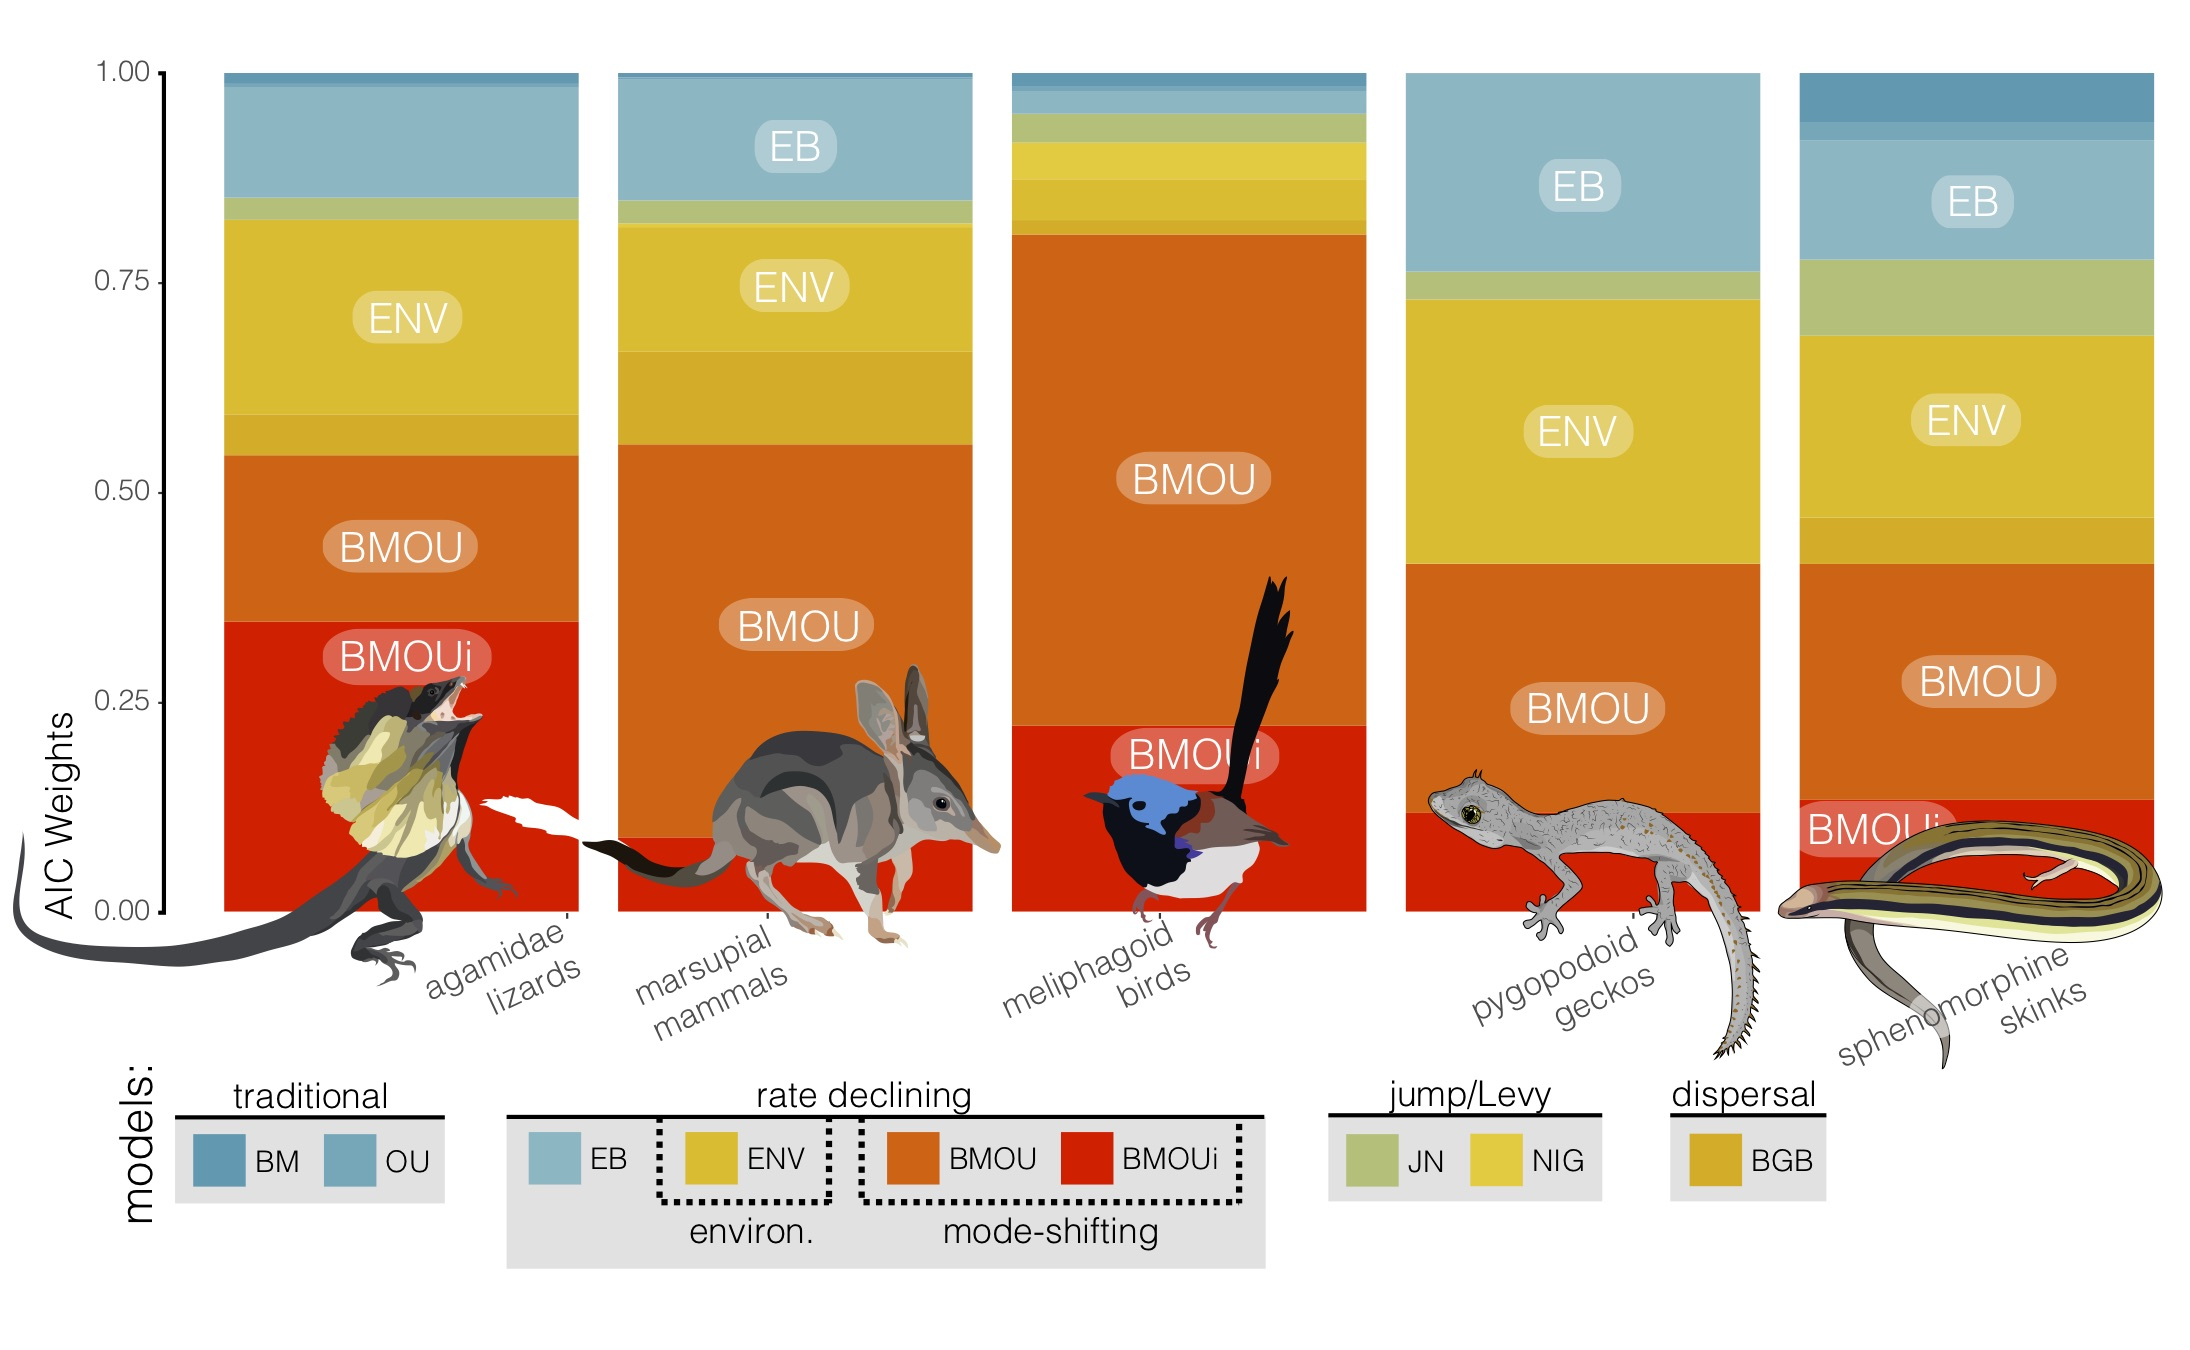 Tempo + Mode of Size Evolution - (2018). Brennan, I.G., Keogh, J.S.Miocene biome turnover constrained body size evolution across multiple radiations of Australian vertebrates.Proceedings of the Royal Society B: Biological Sciences 285: 20181474. Link or Download.